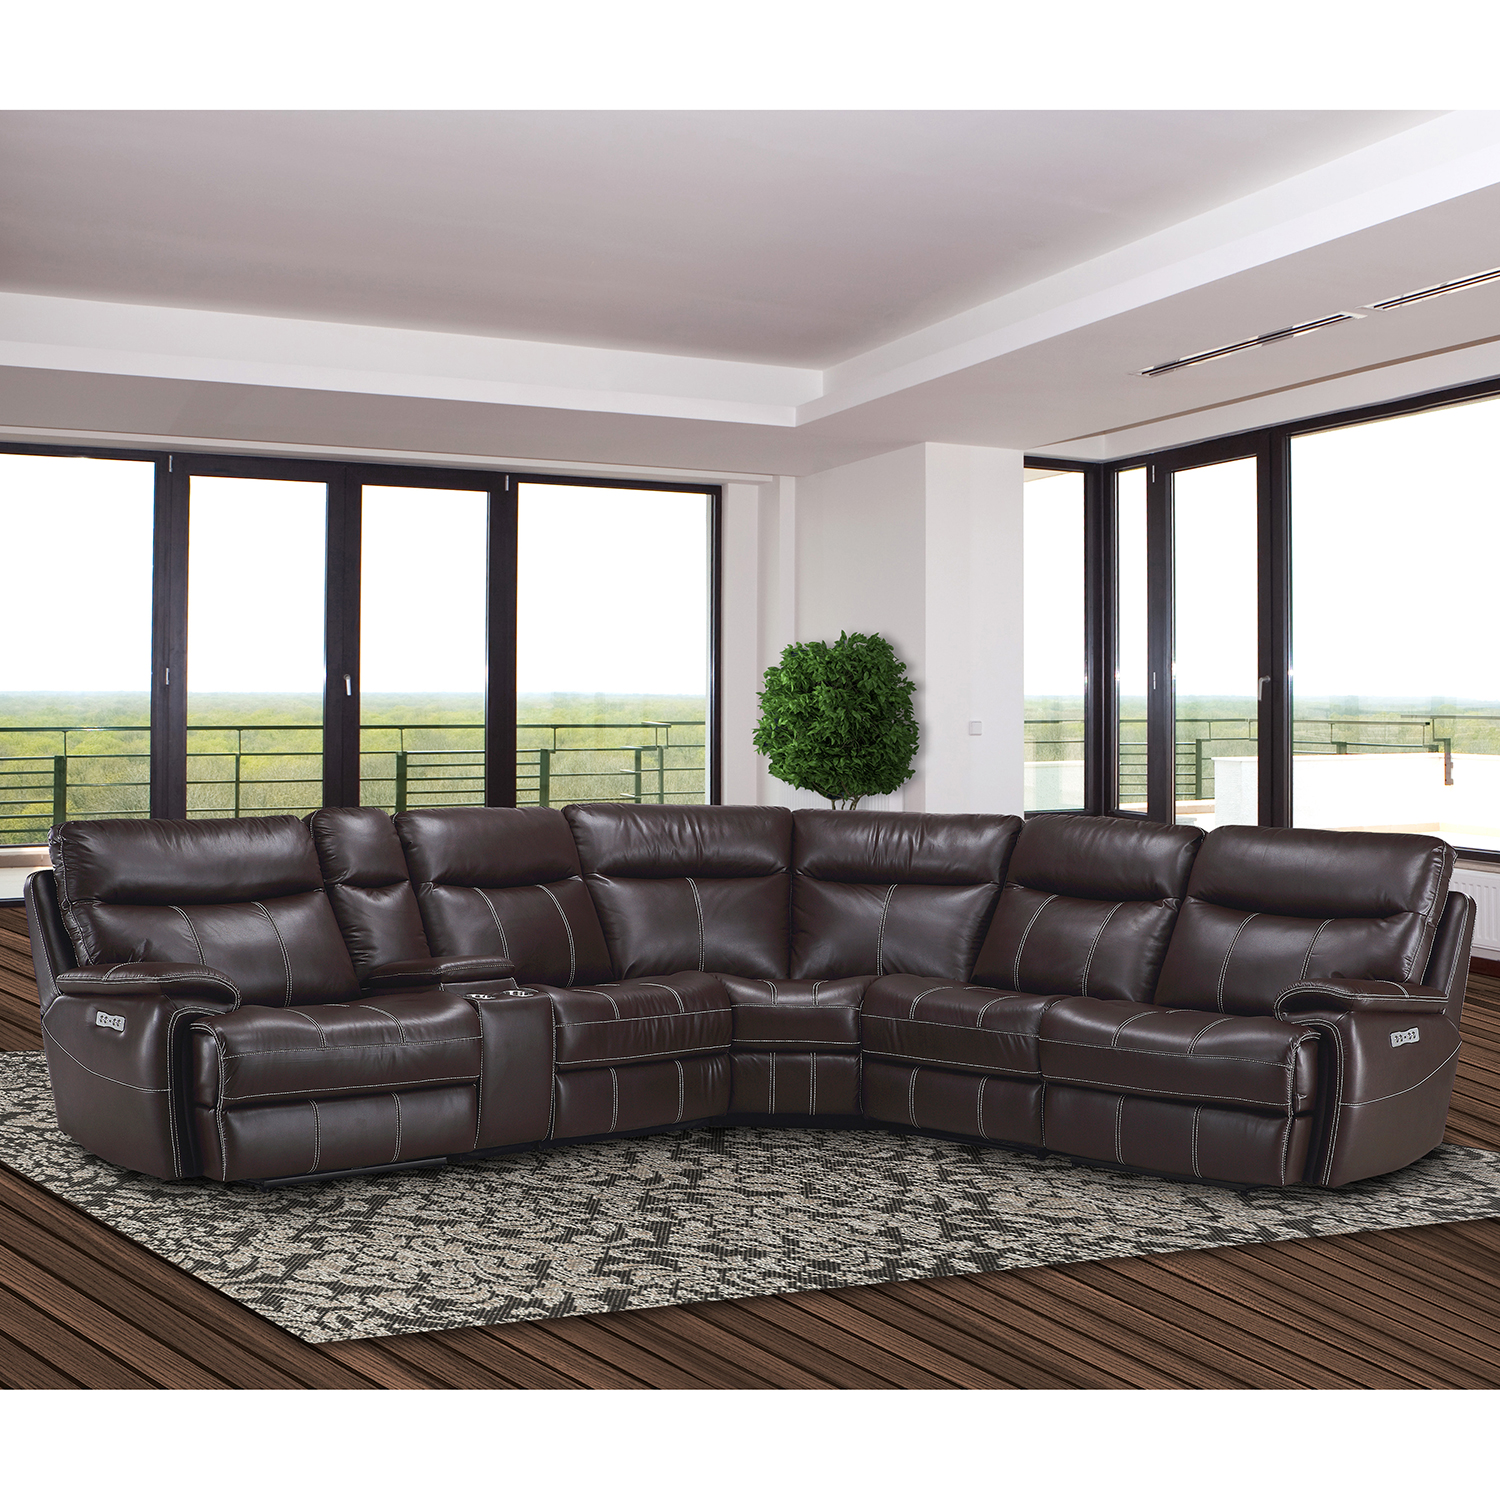 Parker House MDYL6PCSECTIONAL Dylan 6 Piece Sectional